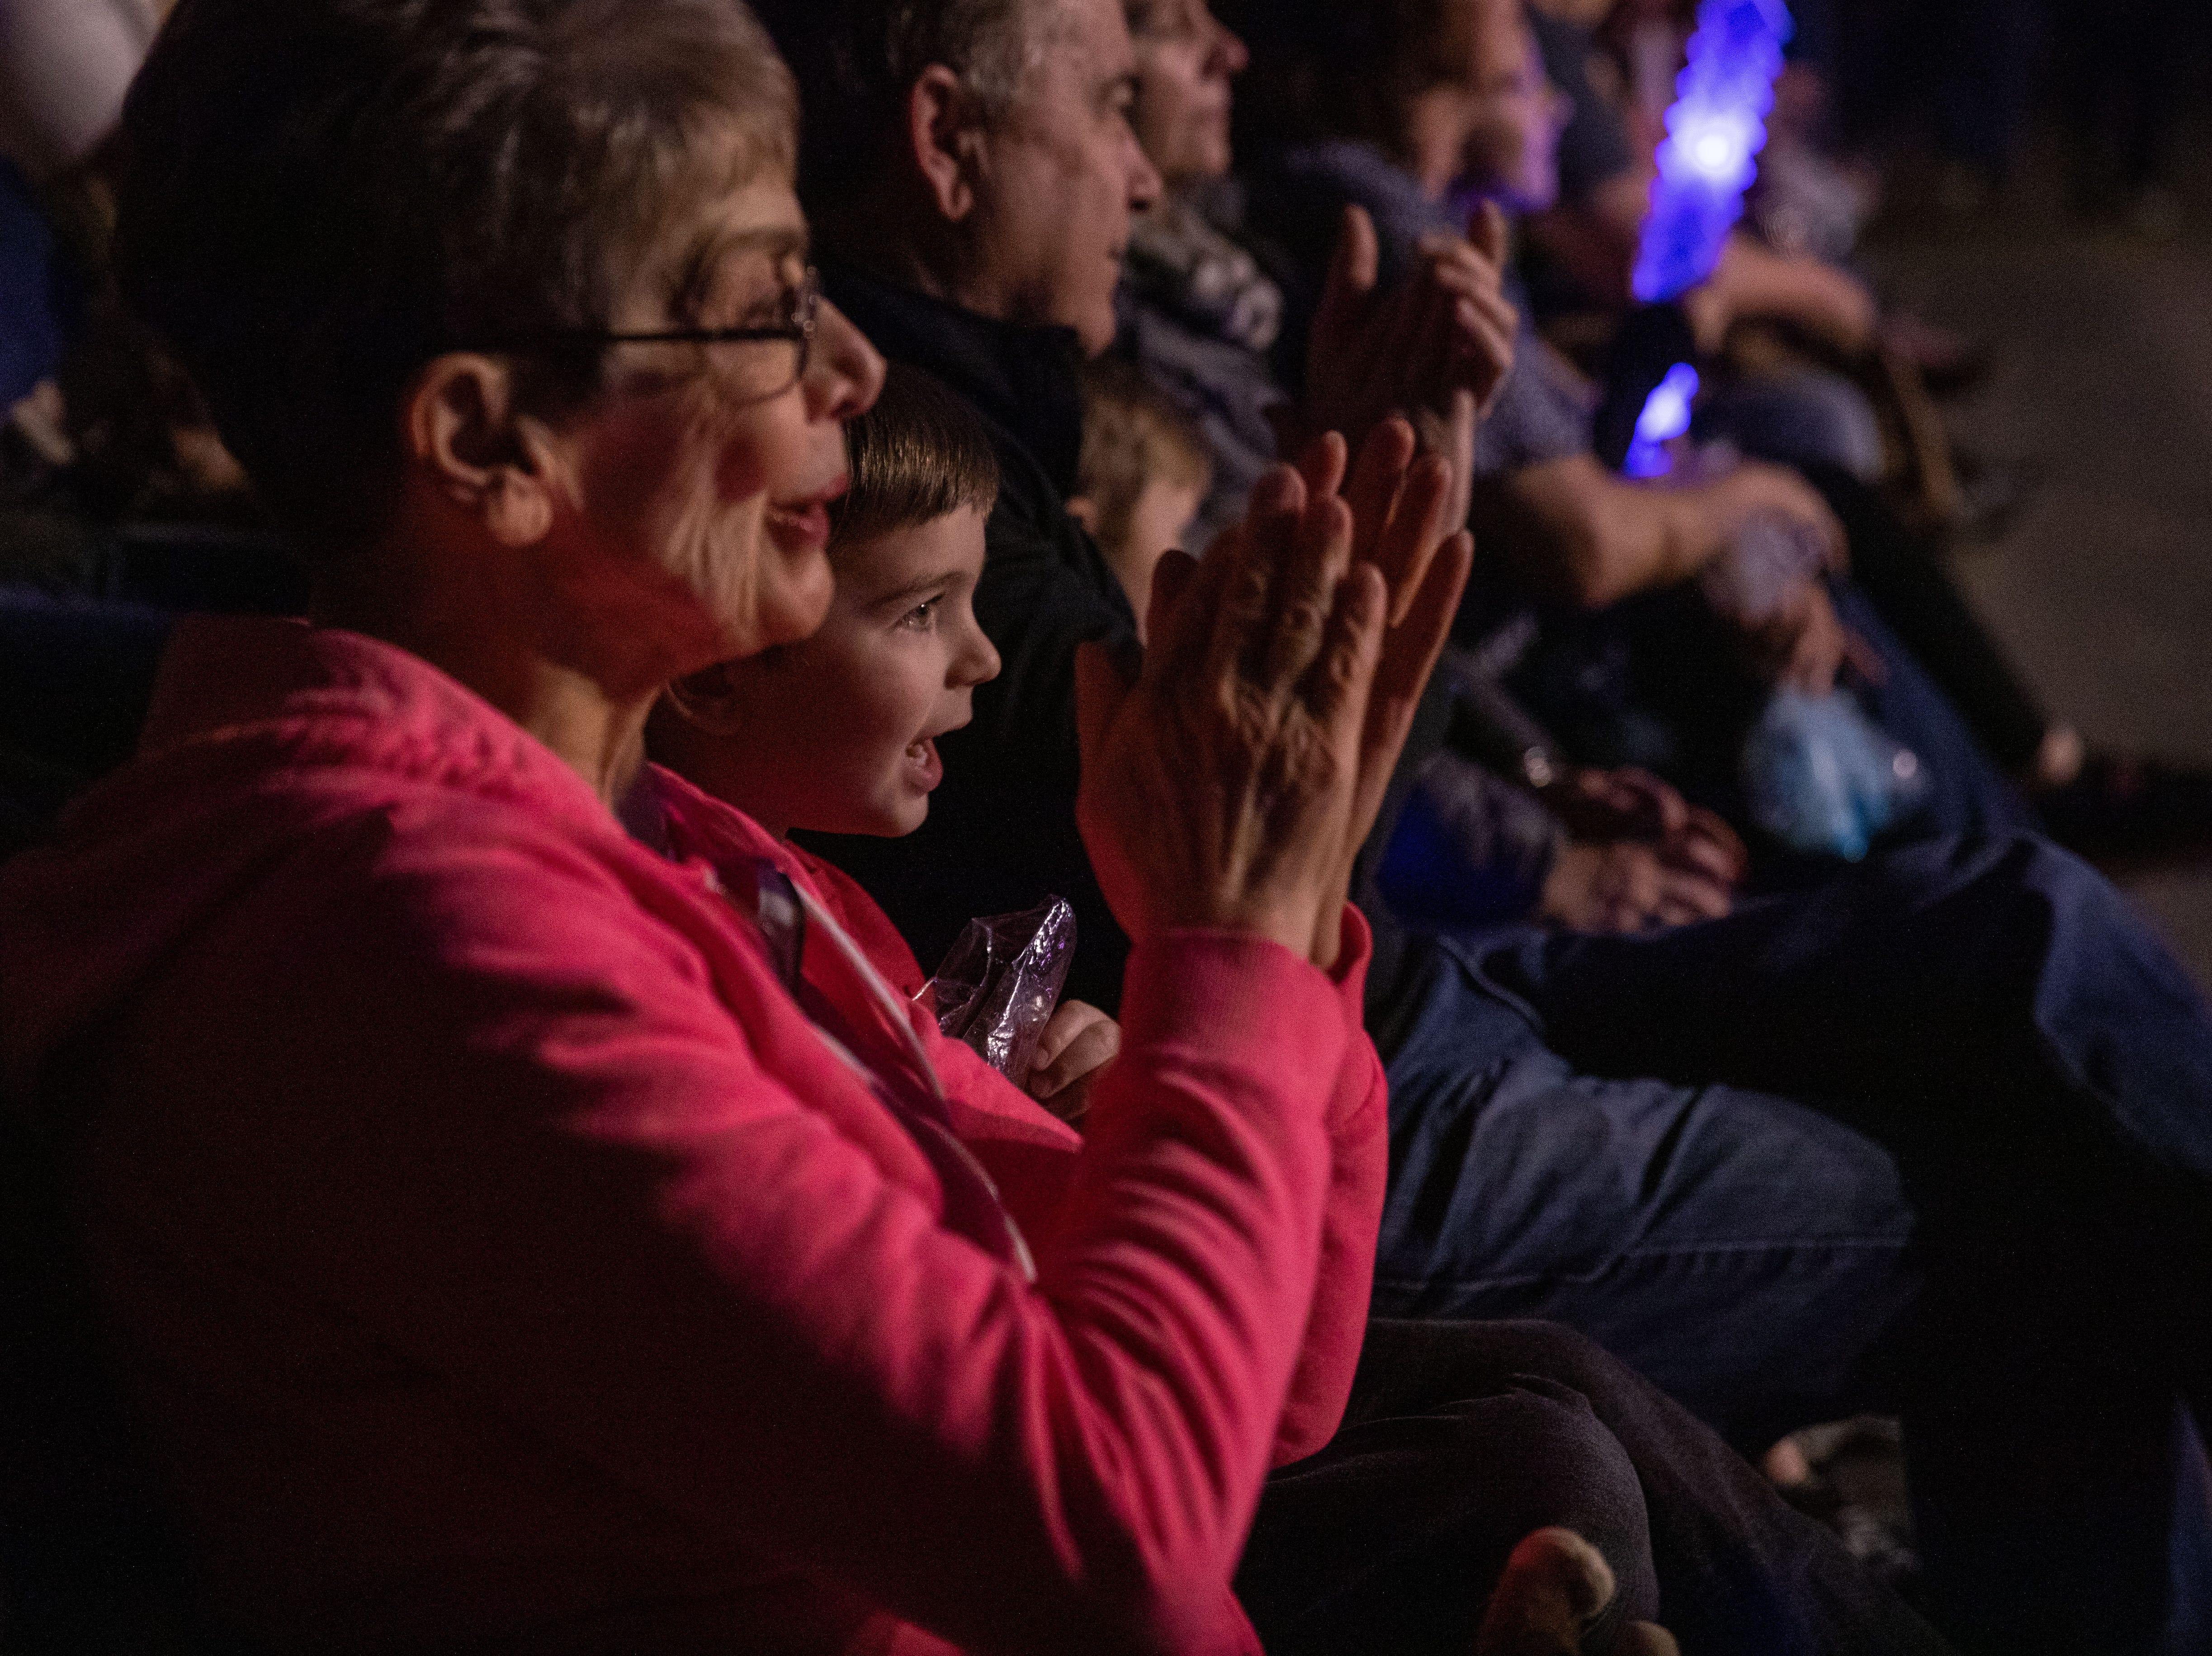 Spectators, young and young-at-heart, applaud the performers at the Kosair Shrine Circus Saturday, Feb. 9, 2019 in Louisville Ky.